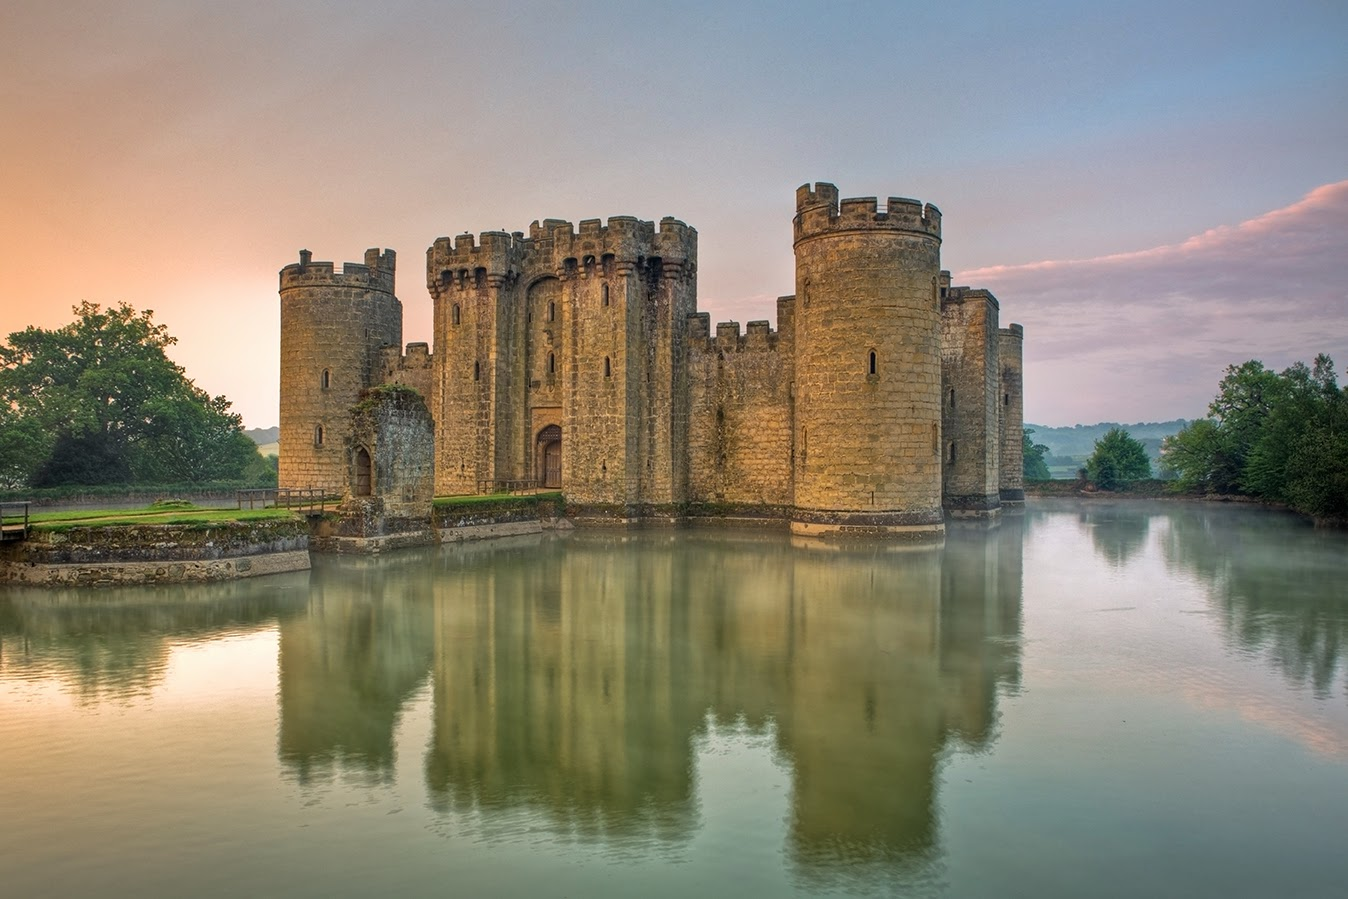 Bodiam Castle, a 14th-century castle near Robertsbridge in East Sussex, England